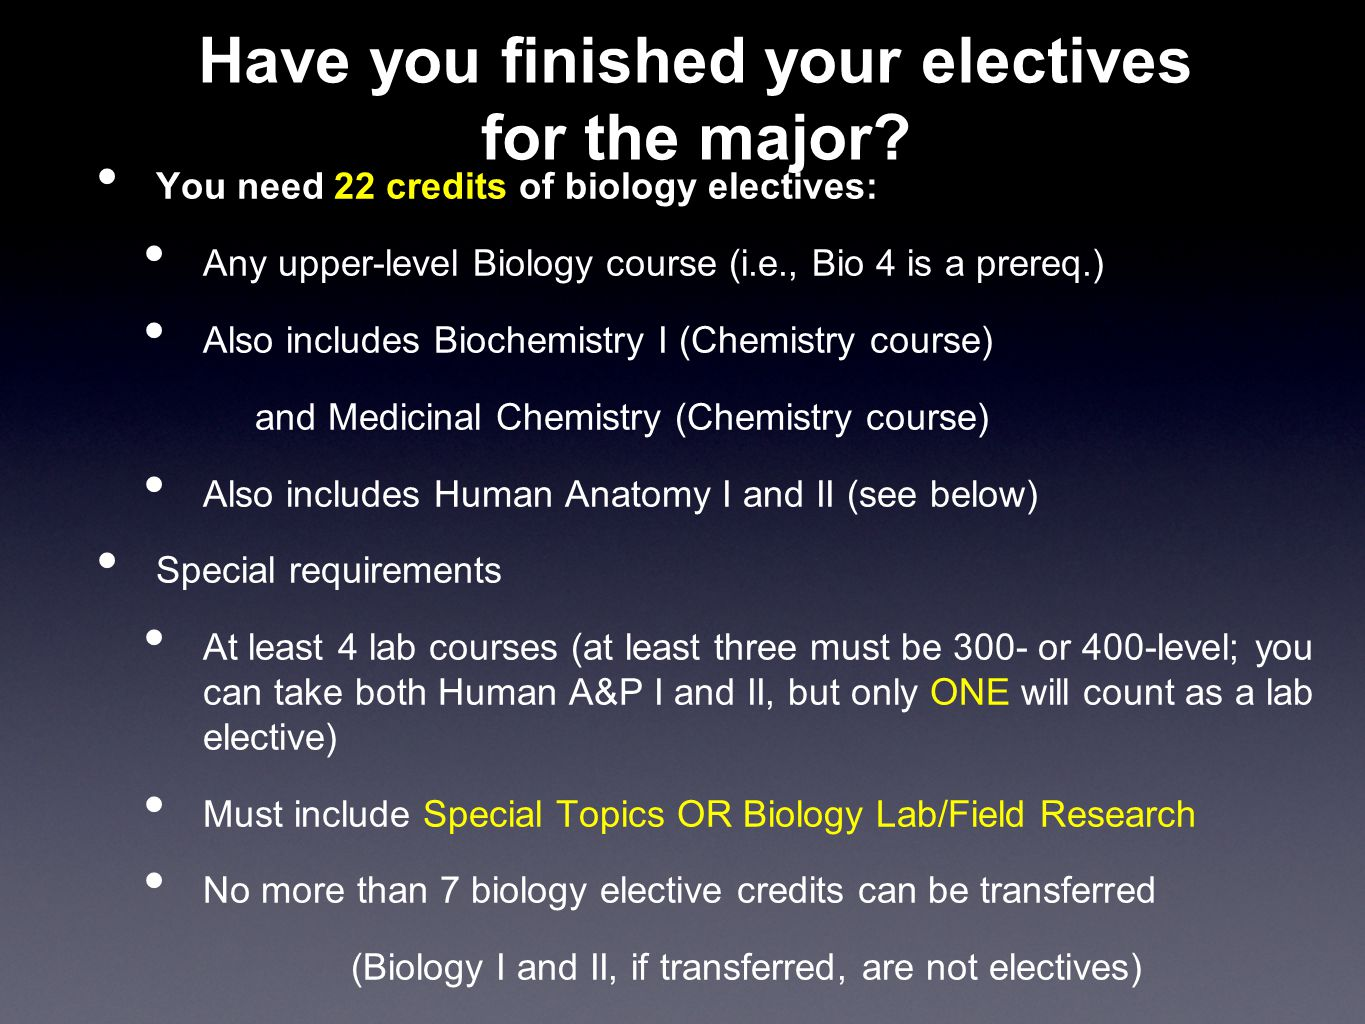 Have you finished your electives for the major? You need 22 credits of biology electives: Any upper-level Biology course (i.e., Bio 4 is a prereq.) Al